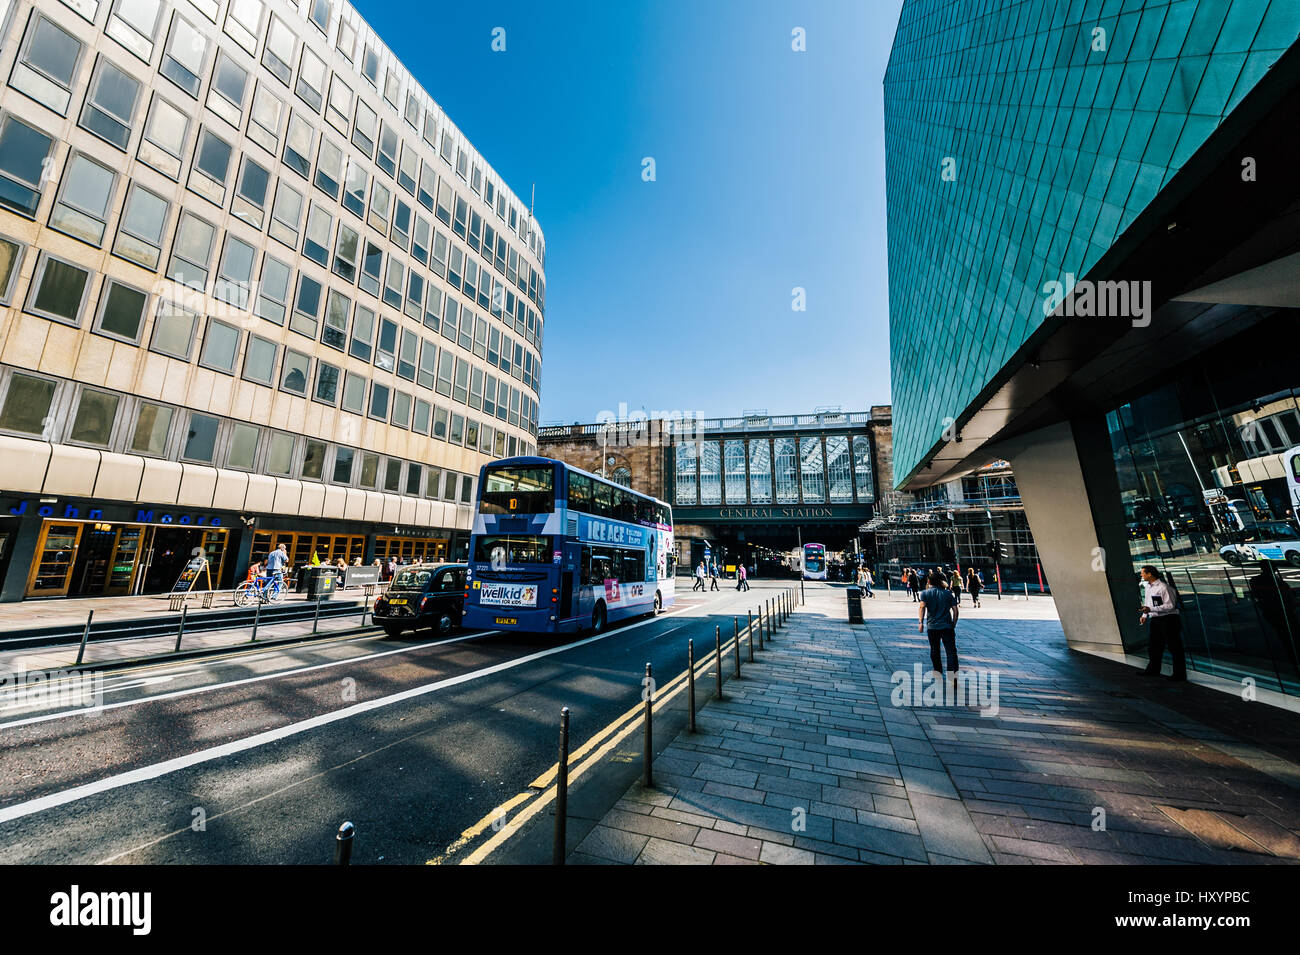 Far View of Central Station Bridge on Argyle Street in Glasgow's City Centre - Stock Image